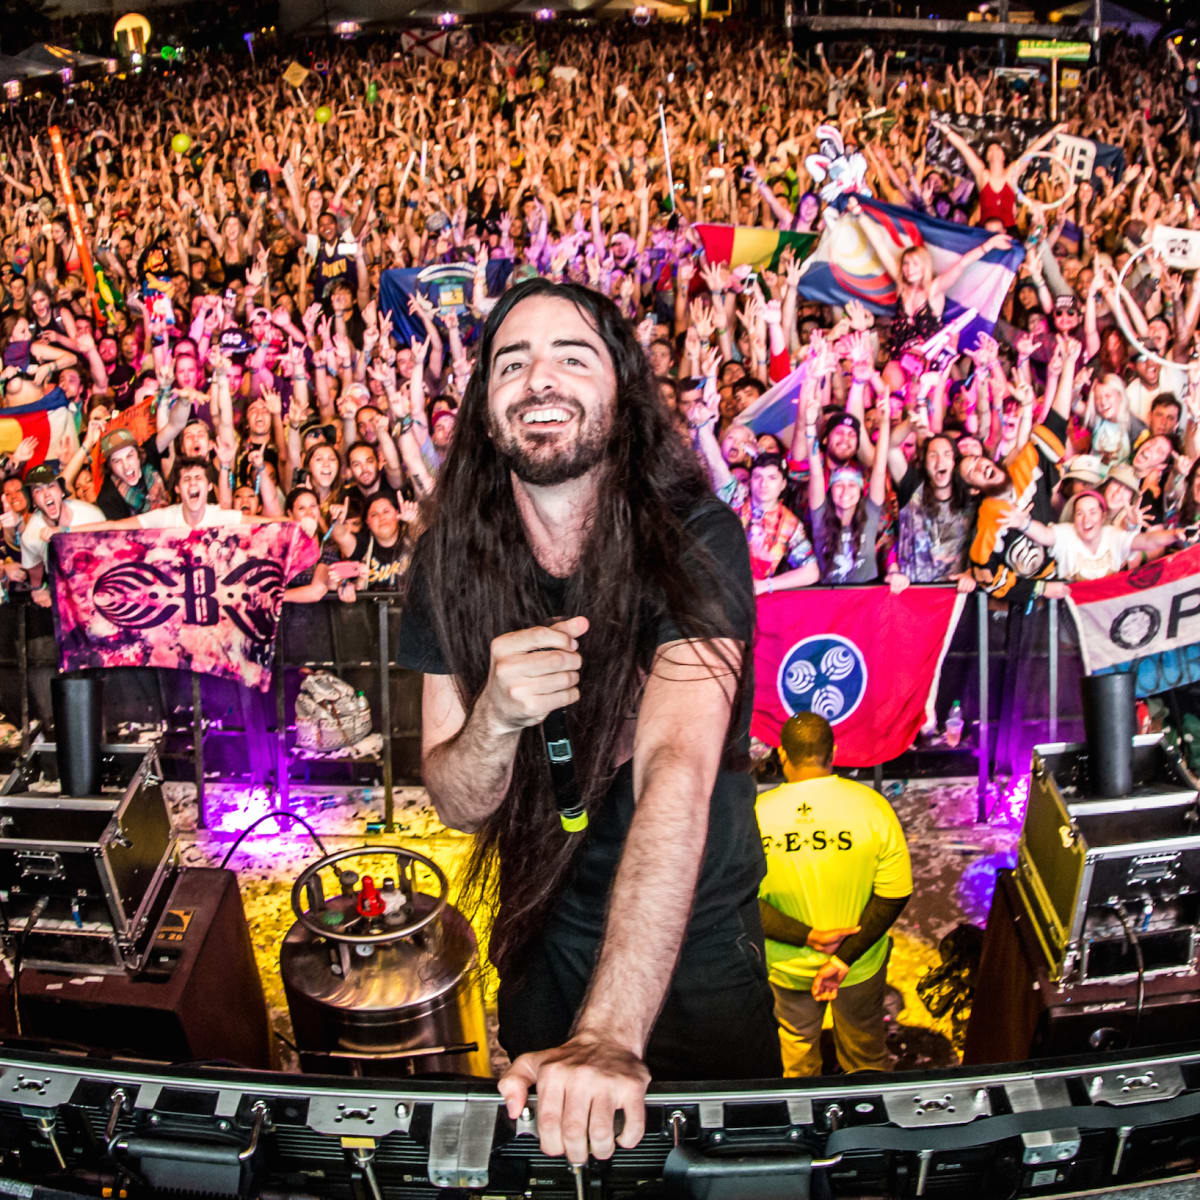 Bassnectar Announces Cancellation of All Remaining Special Events In 2020 - EDM.com - The Latest Electronic Dance Music News, Reviews & Artists